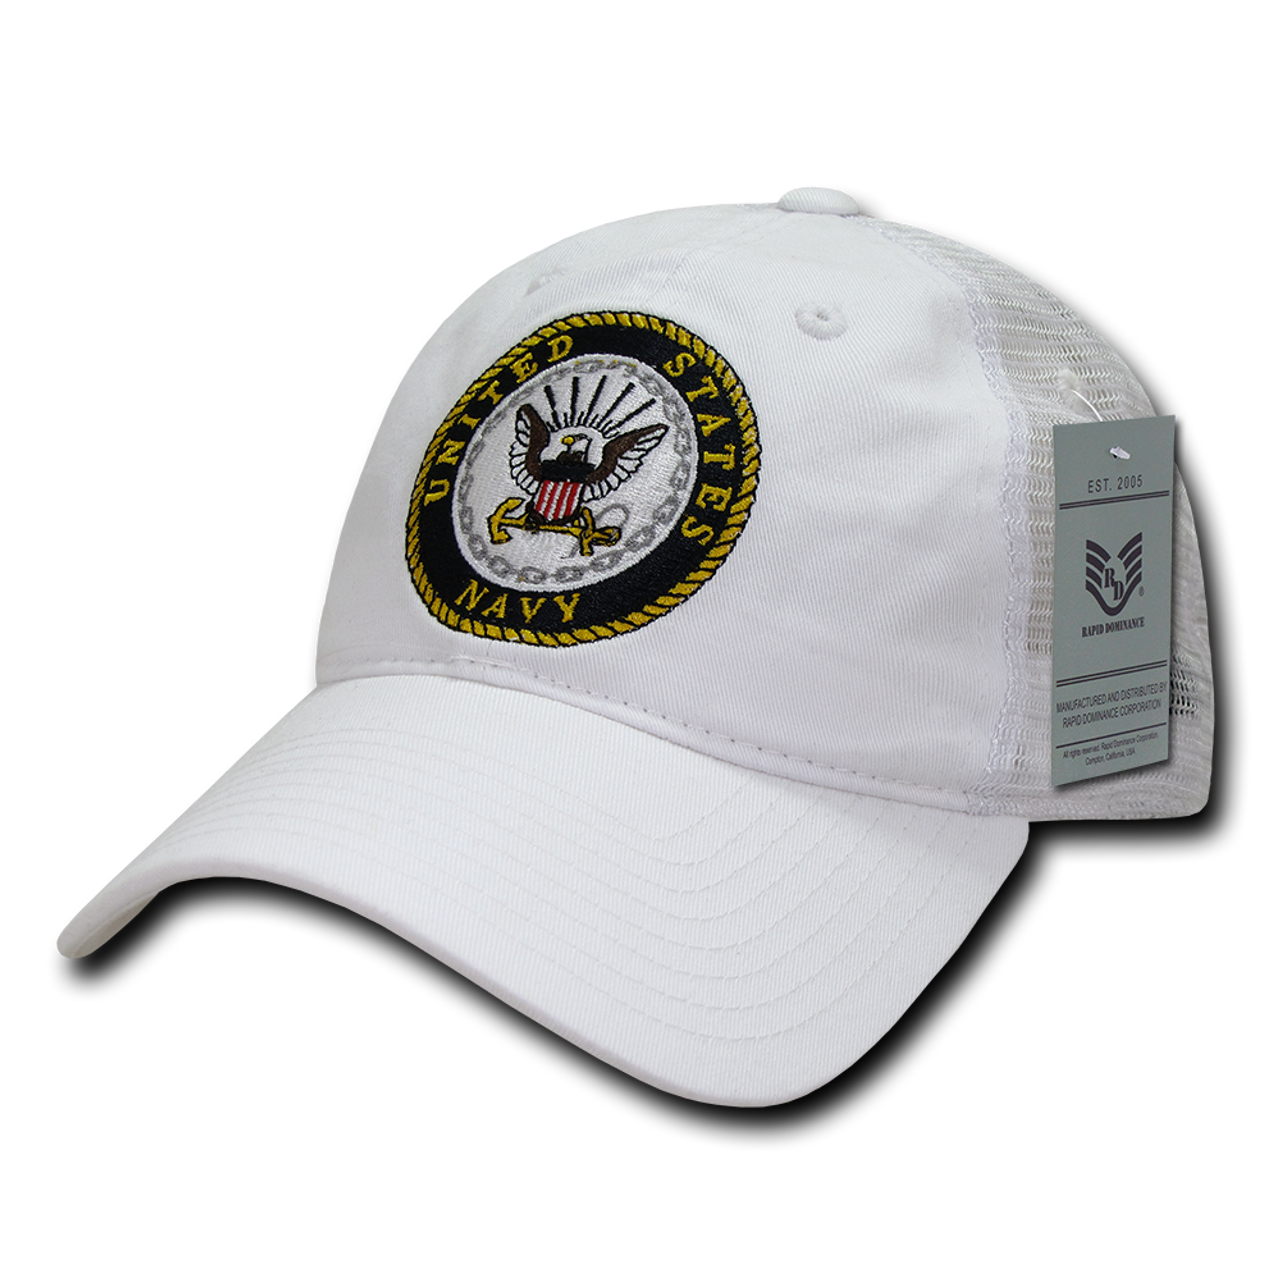 ... baseball cap with logo emblem 6a594 559b2  discount u.s. navy caps  trucker mesh white us military hats 37c08 6a796 bc0780b3aac8